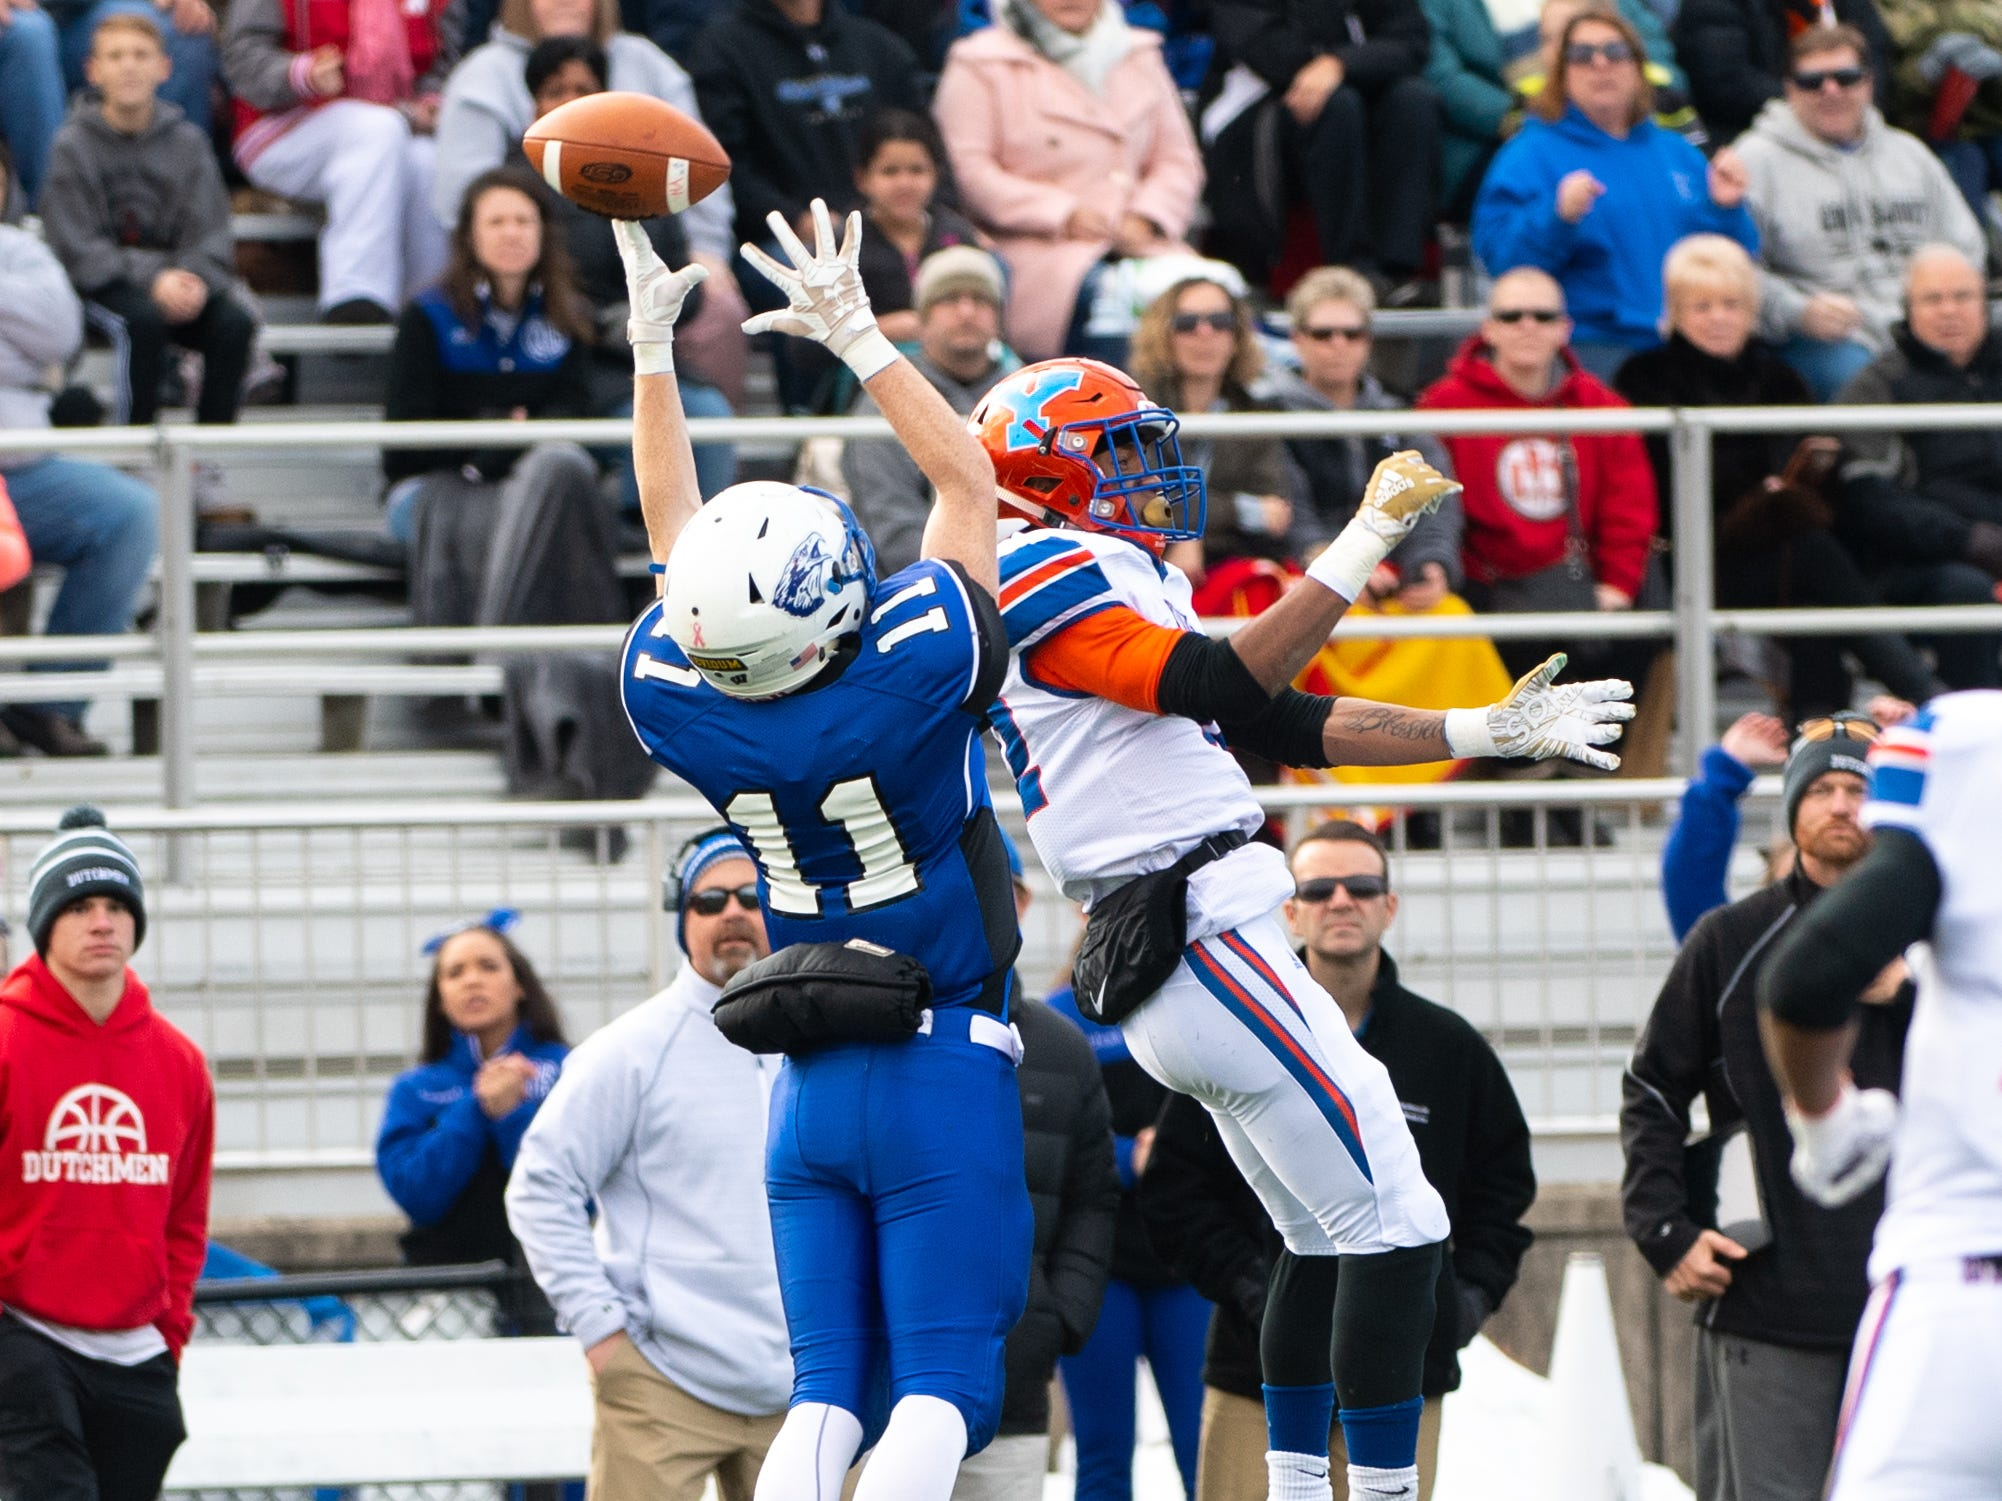 Cocalico's Seamus Finnegan (11) narrowly misses the catch during the District 3 Class 5A football semifinal between York High and Cocalico at Manheim Central High School, November 17, 2018. The Eagles defeated the Bearcats 61 to 35.